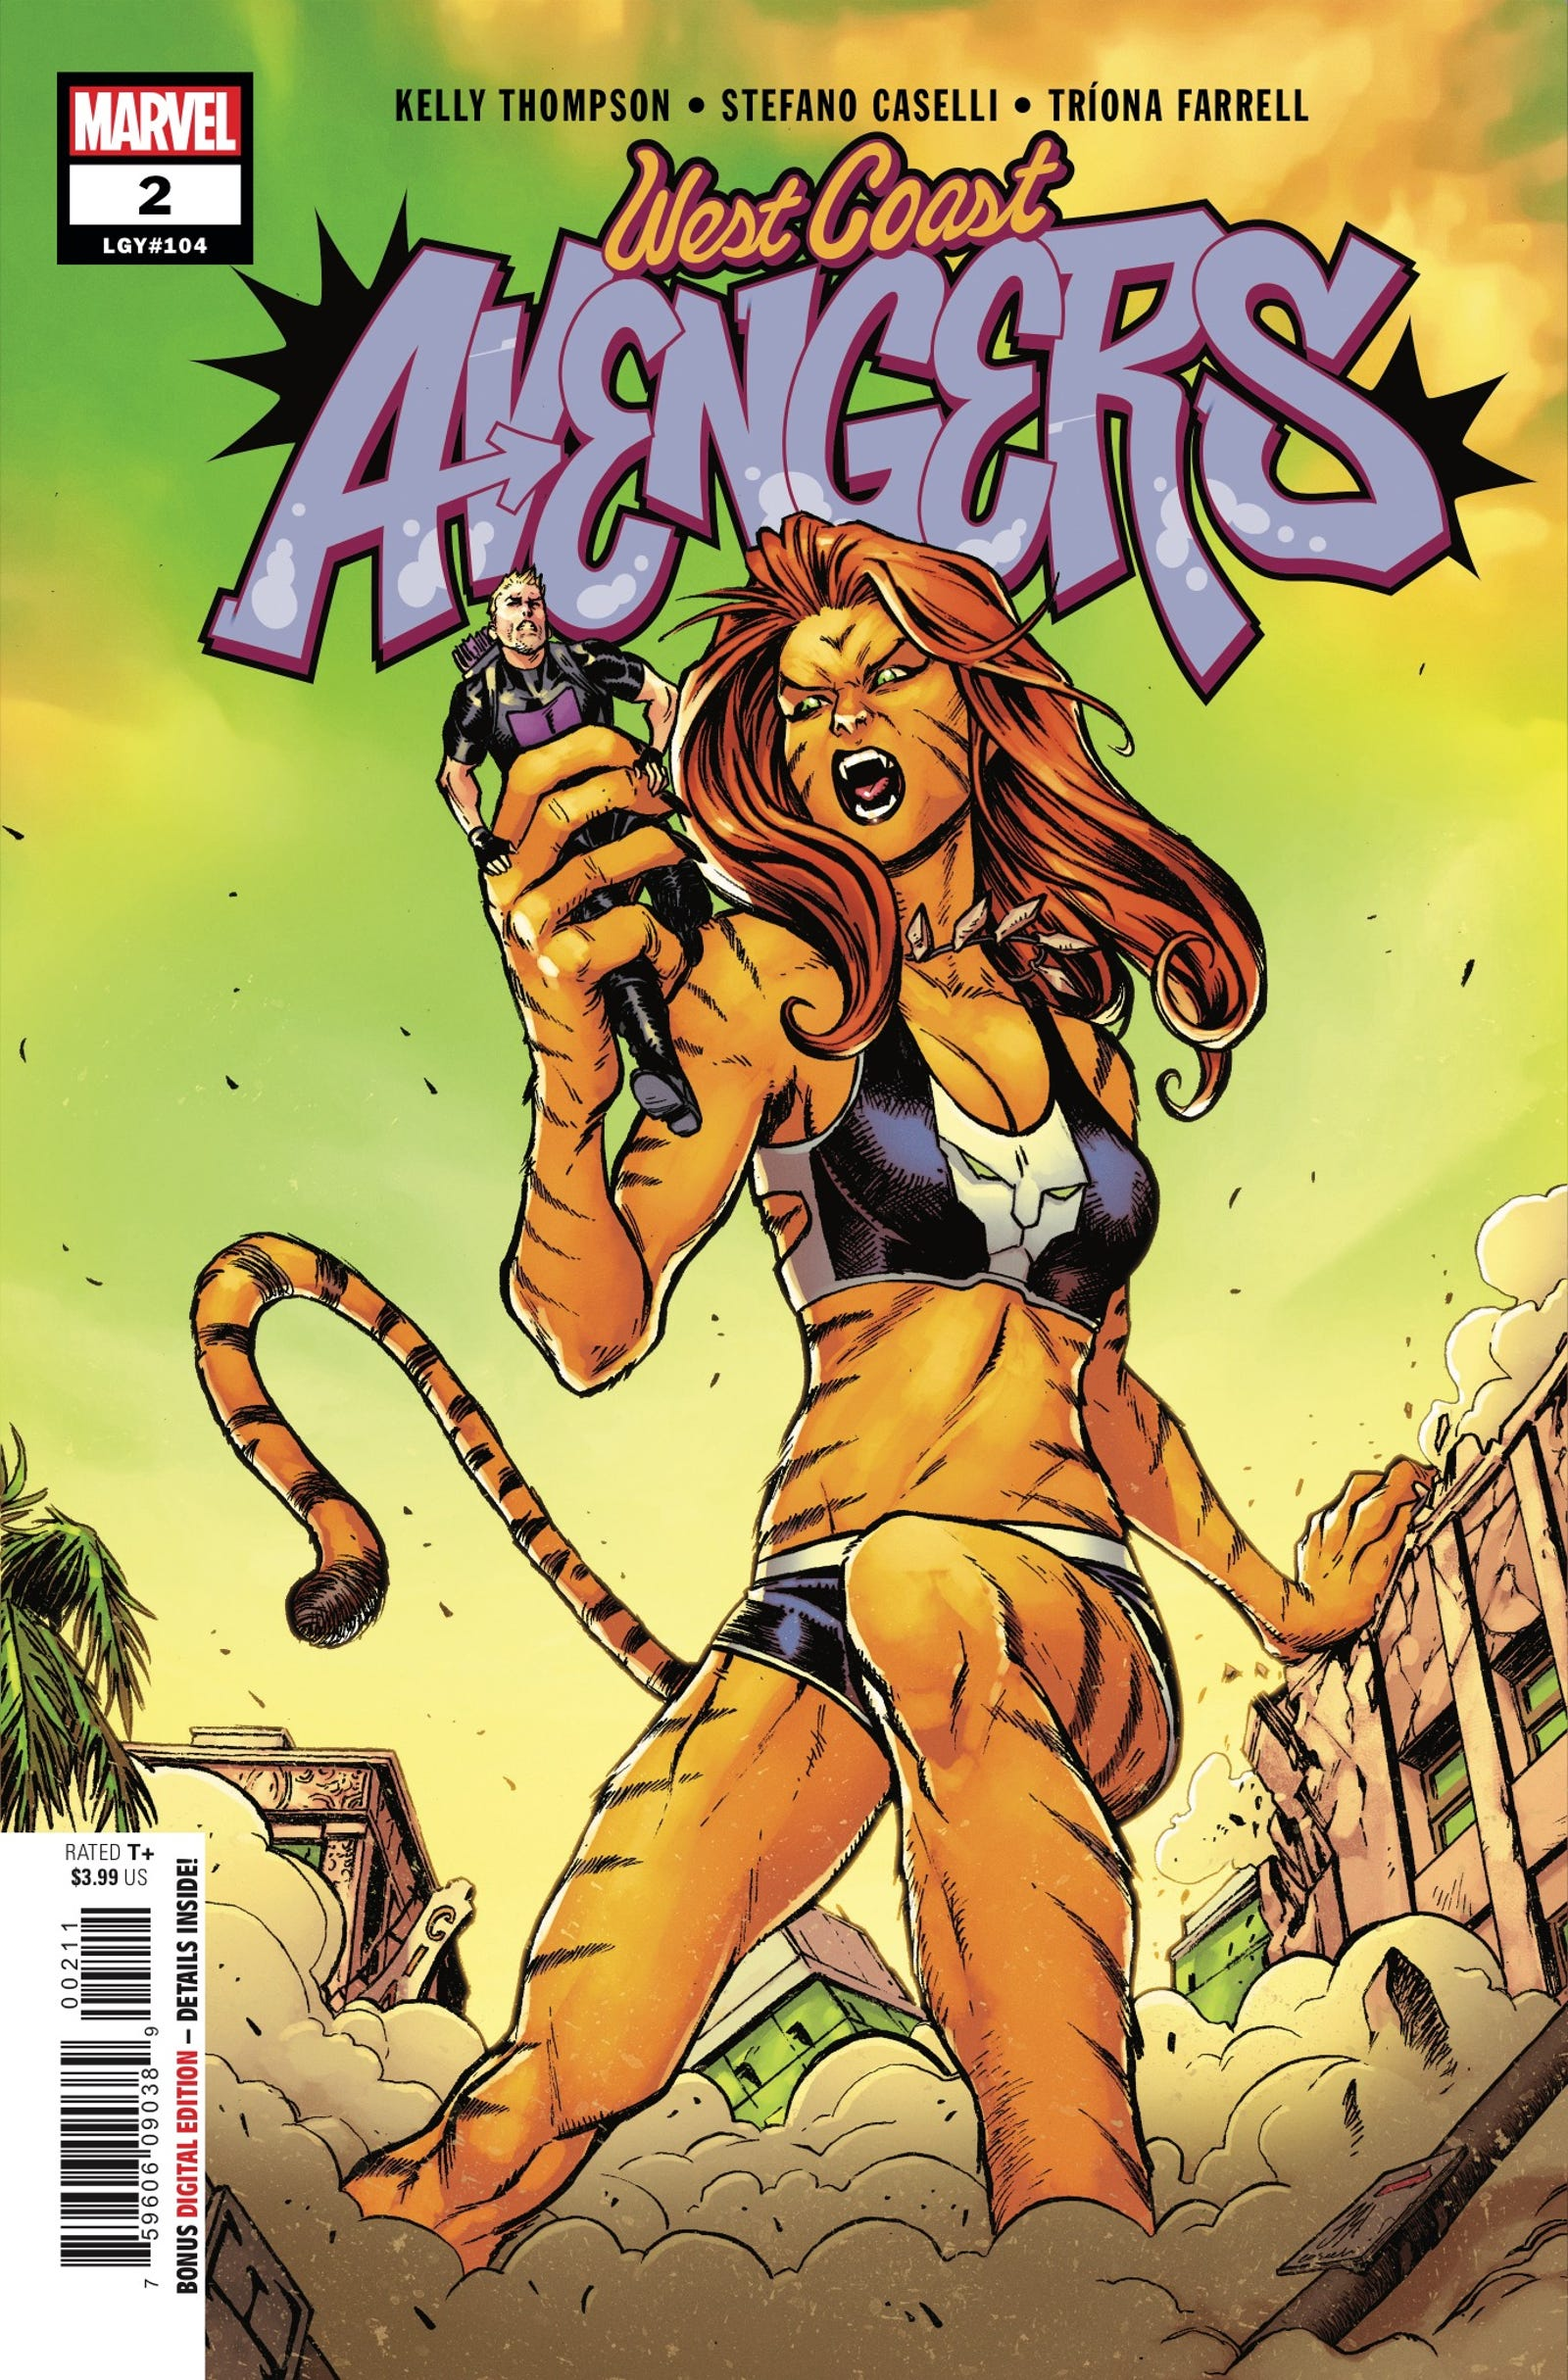 Cover by Stefano Caselli and Nolan Woodard